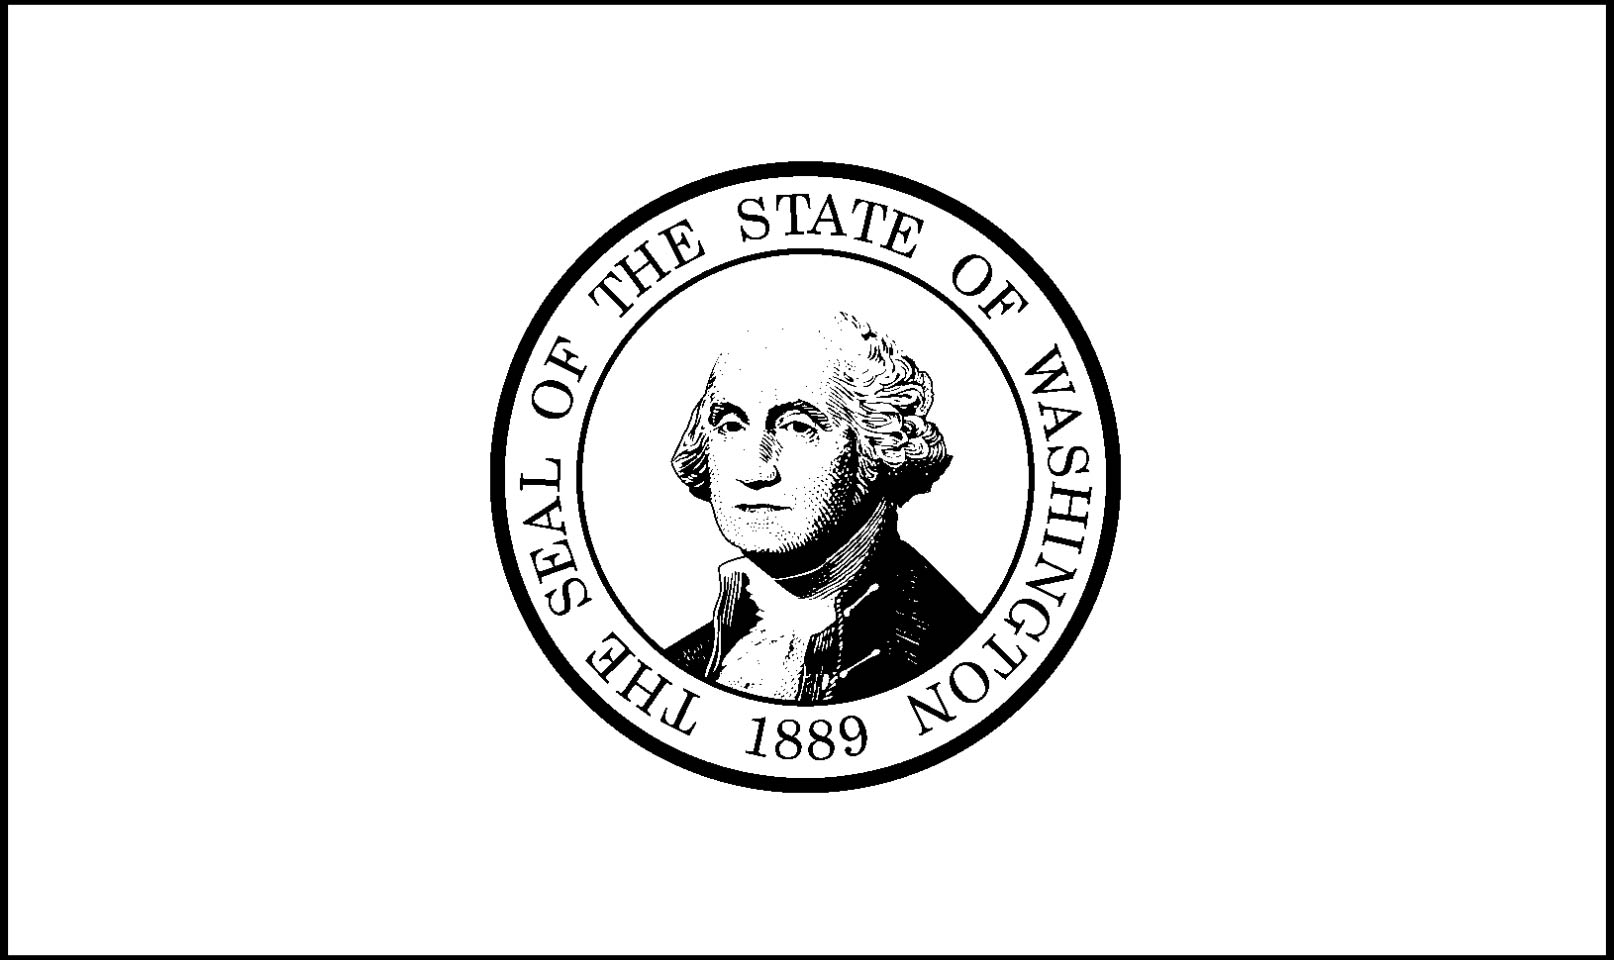 download washington state flag line drawings jpg